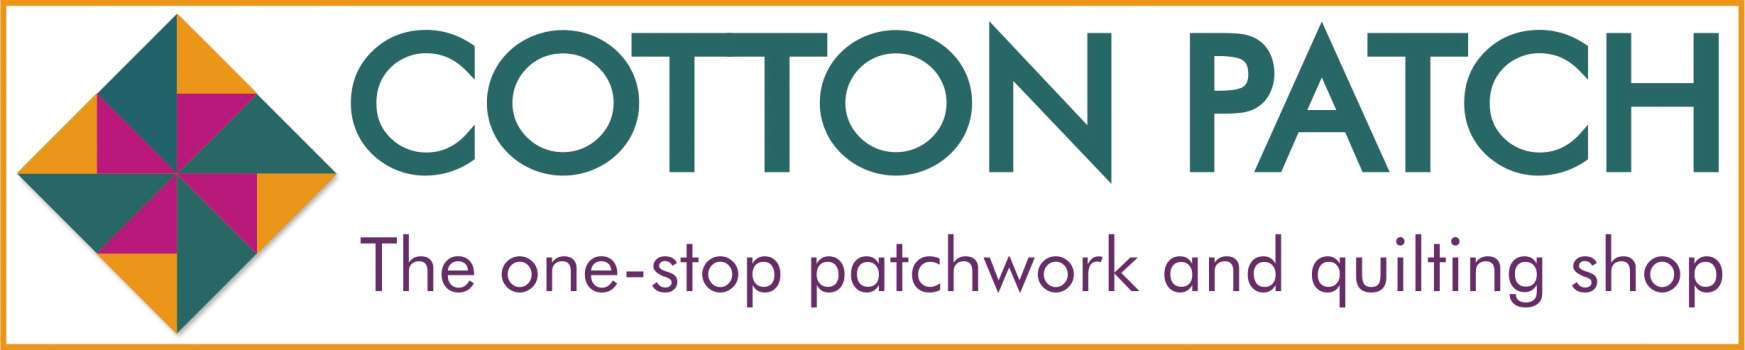 Cotton Patch, The one stop patchwork and quilting shop